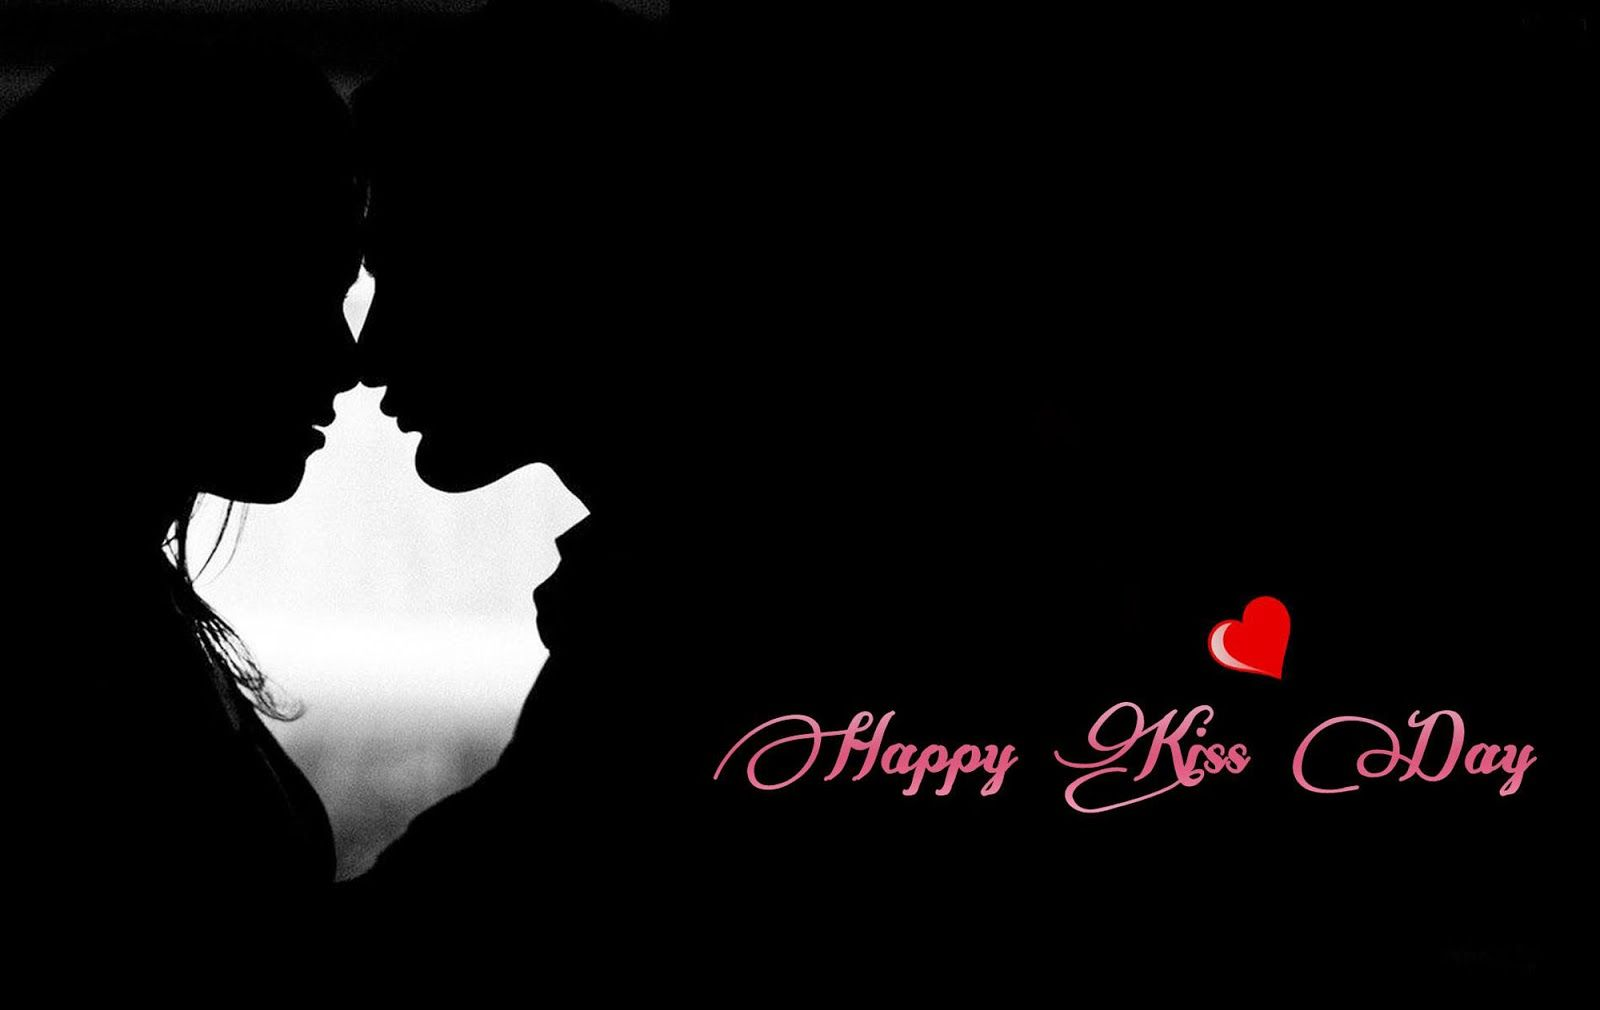 Cute and Best Loved Wallpapers and SmS: More Kiss Day Wallpapers